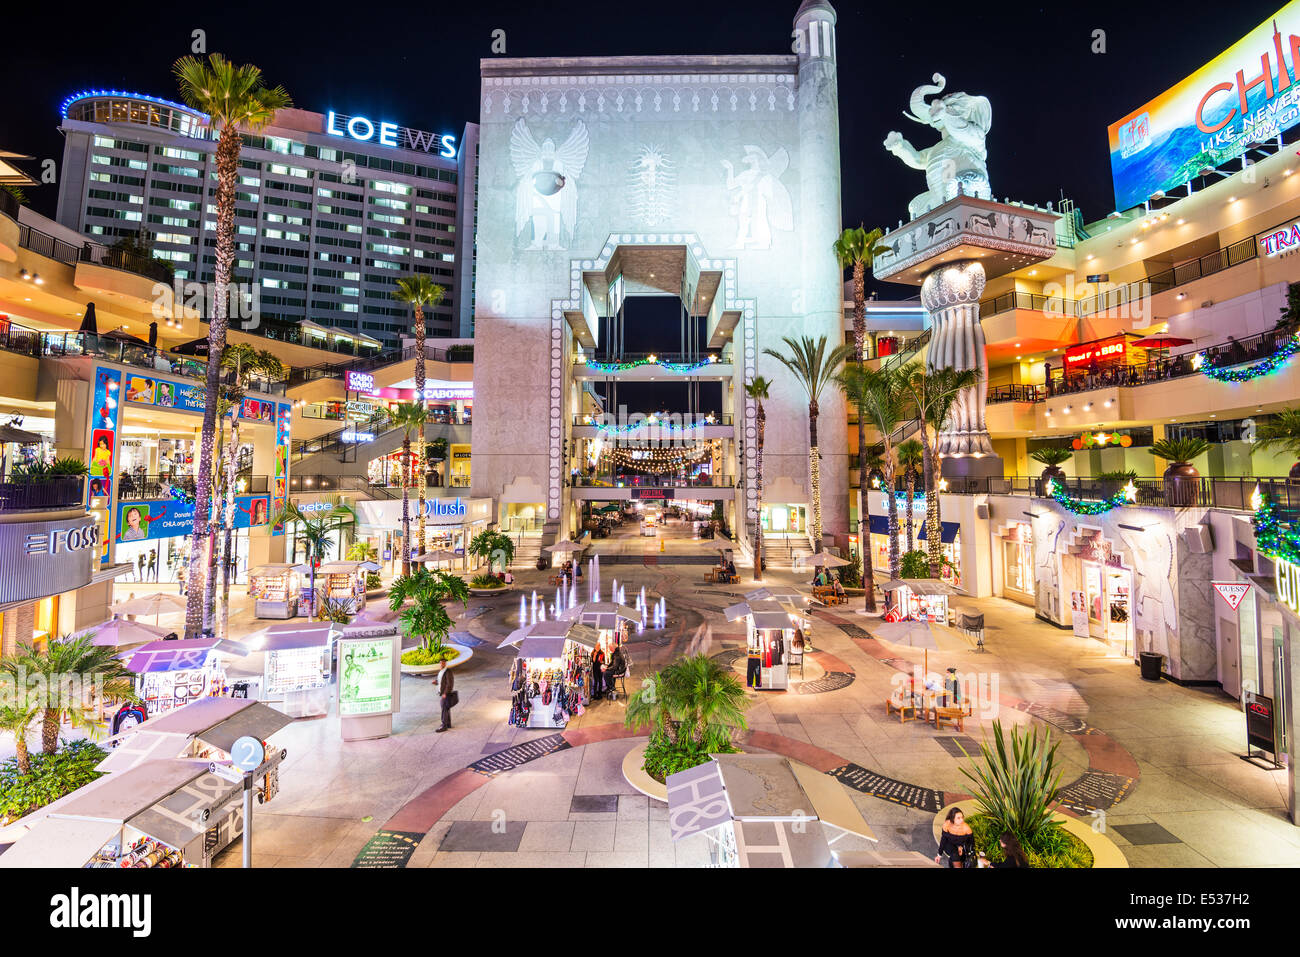 Hollywood and Highland complex at night in Hollywood, California. - Stock Image